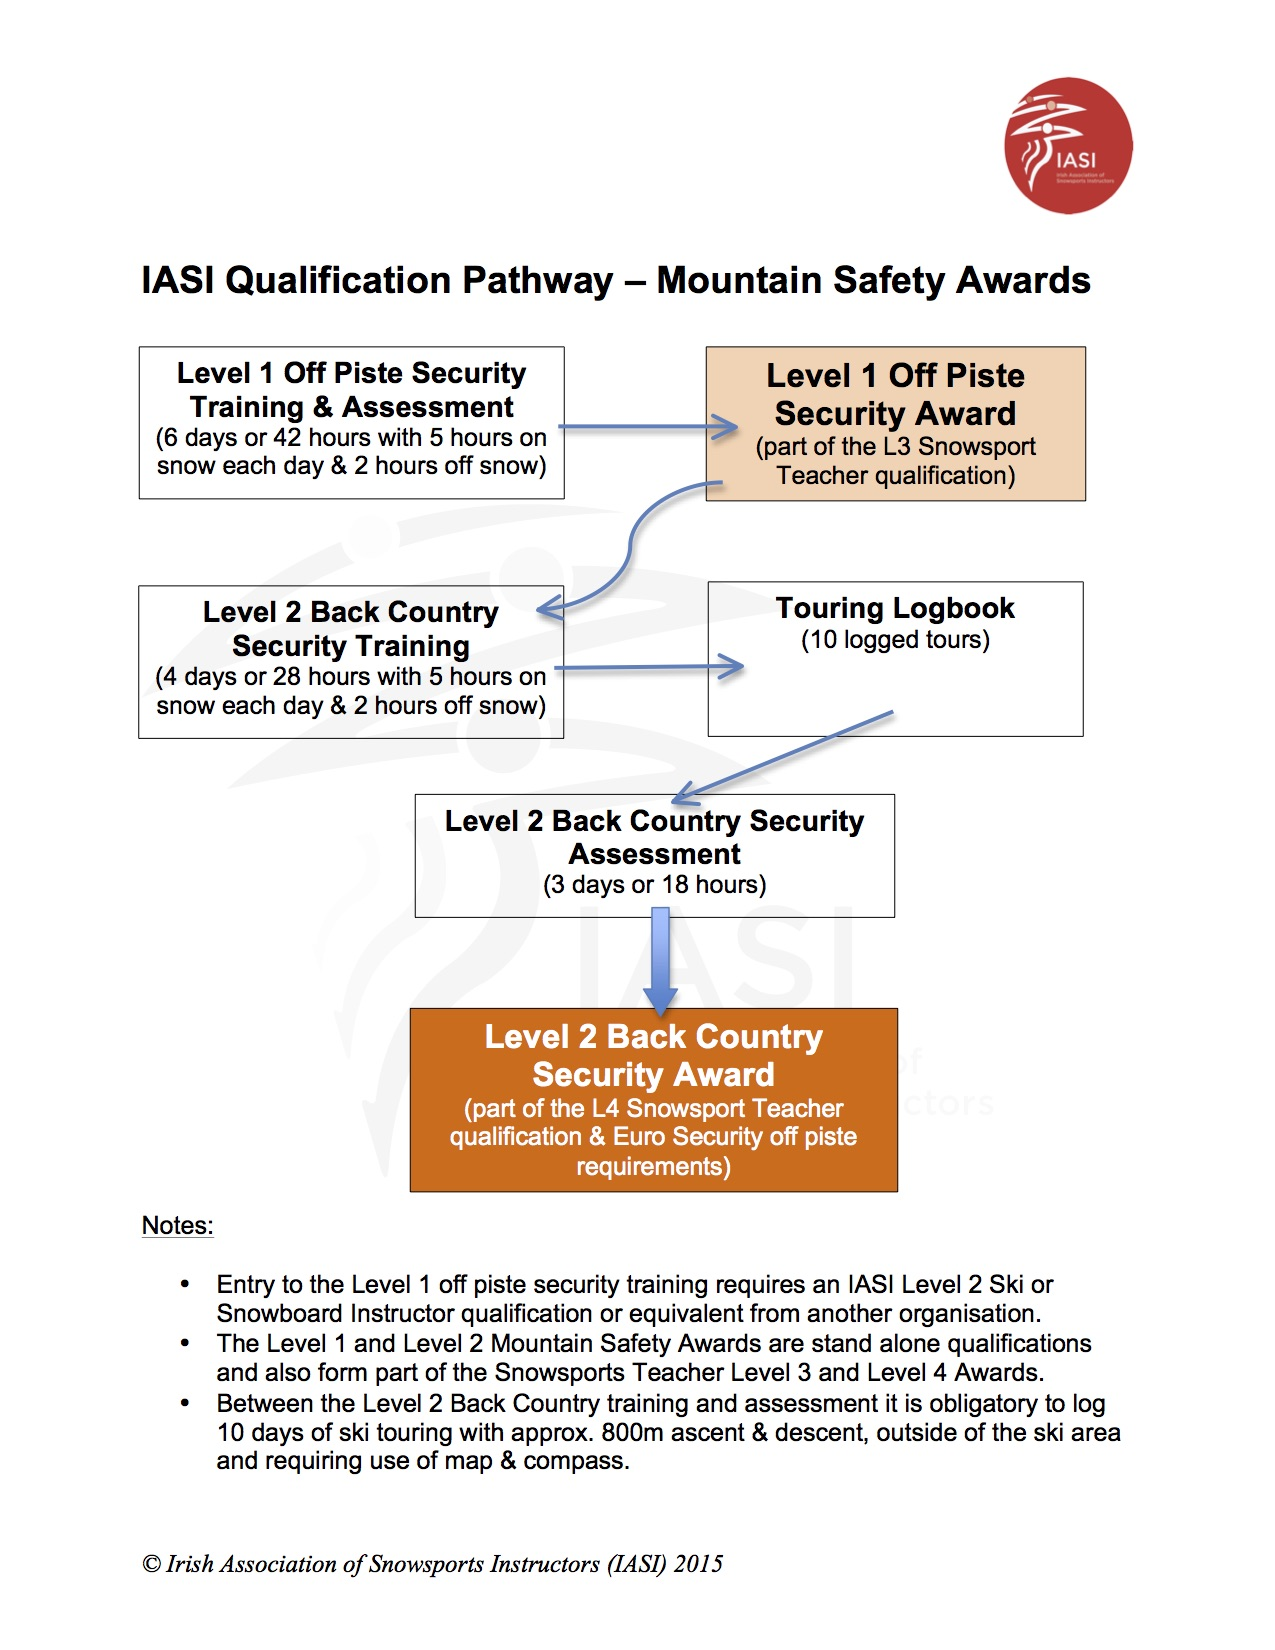 IASI Qualification Pathway Mountain Safety Awards